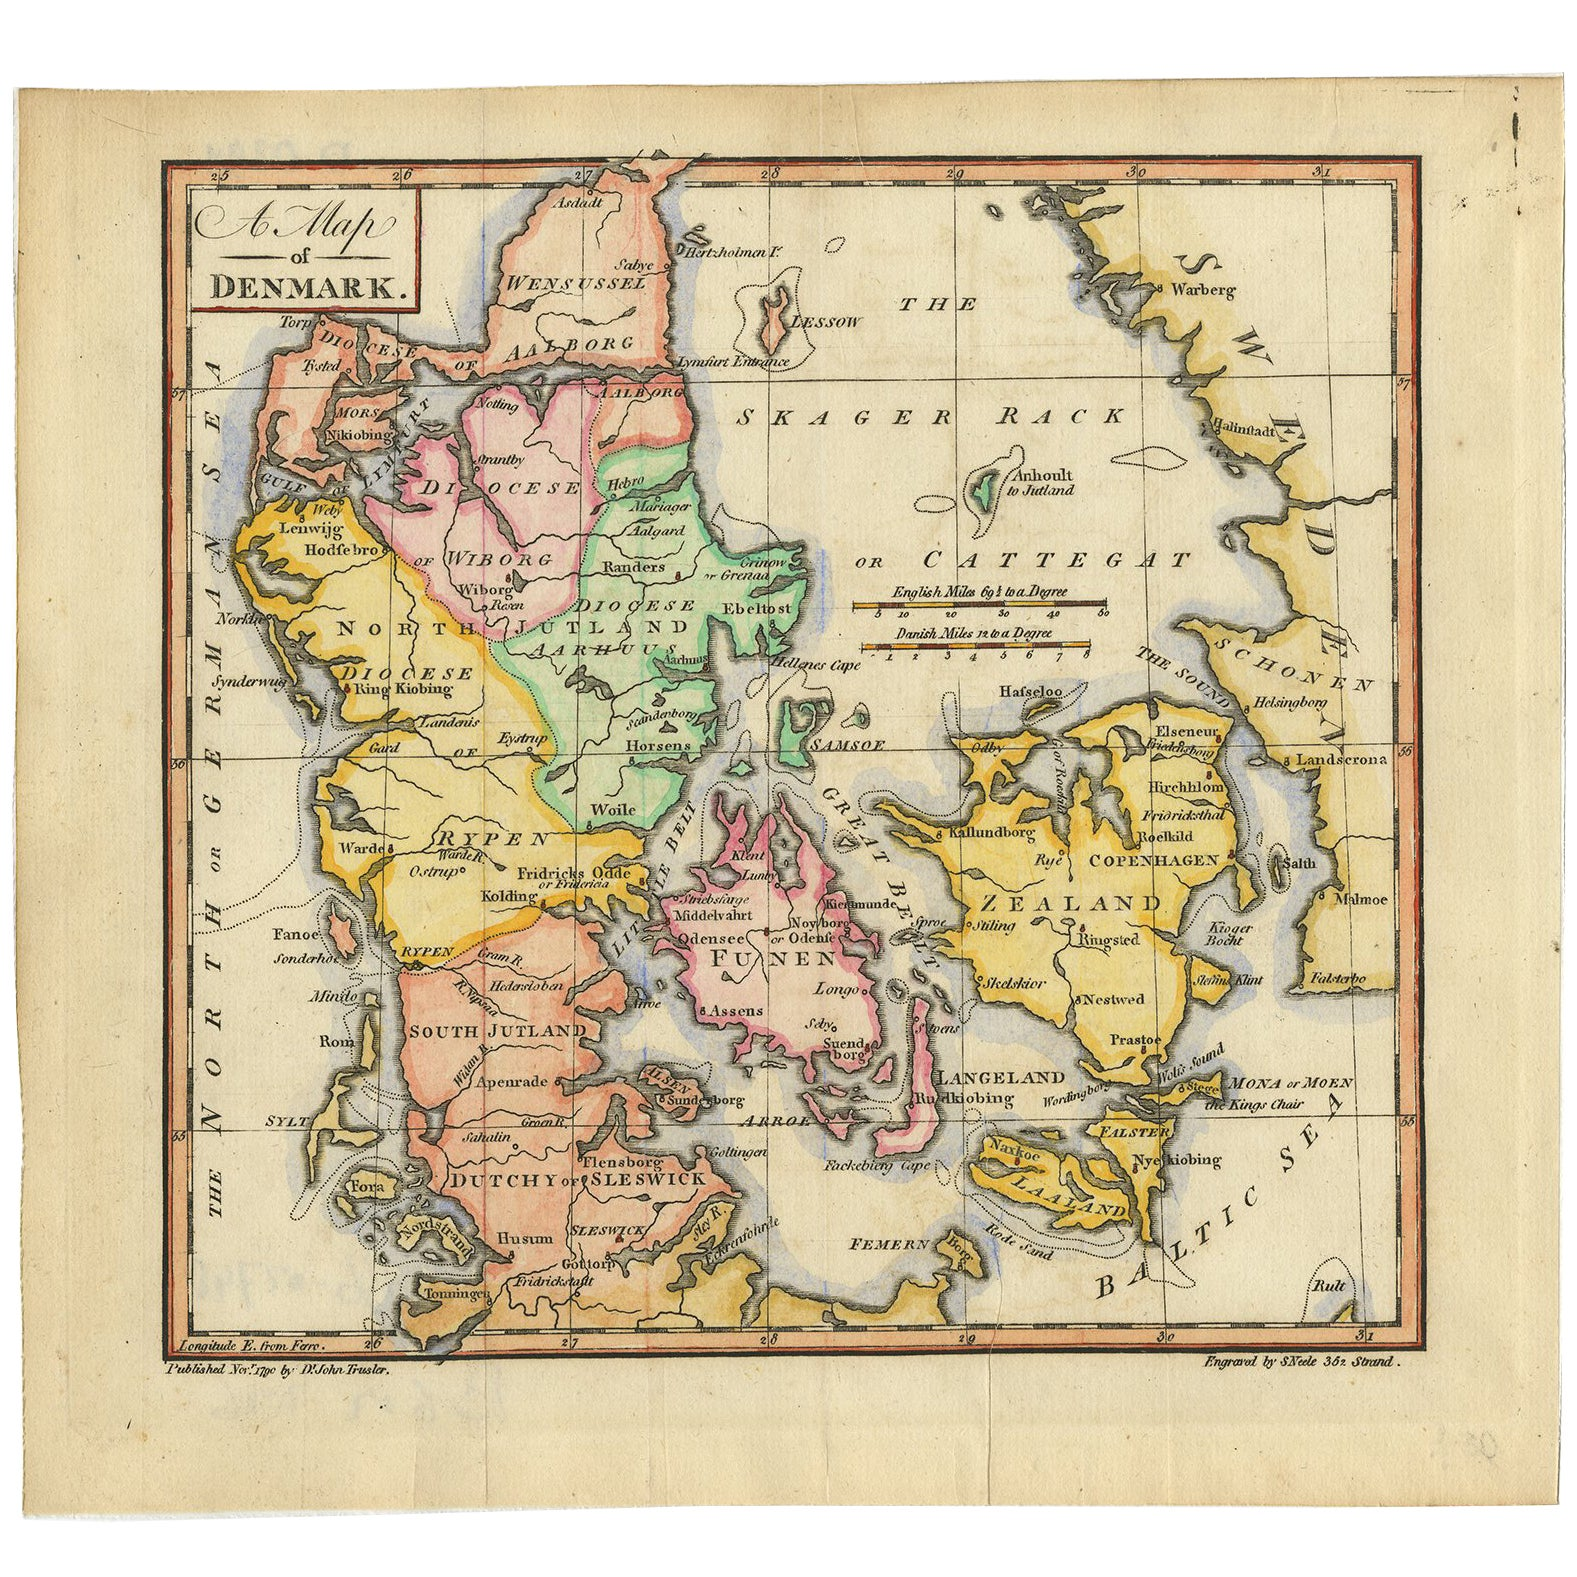 Antique Map of Denmark by S. Neele, 1790